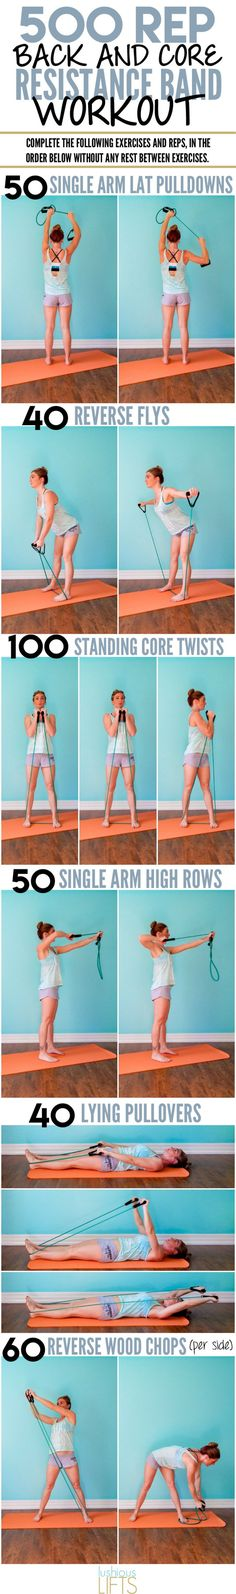 500 rep Back and Core Resistance Band Workout | Posted By: NewHowToLoseBellyFat.com